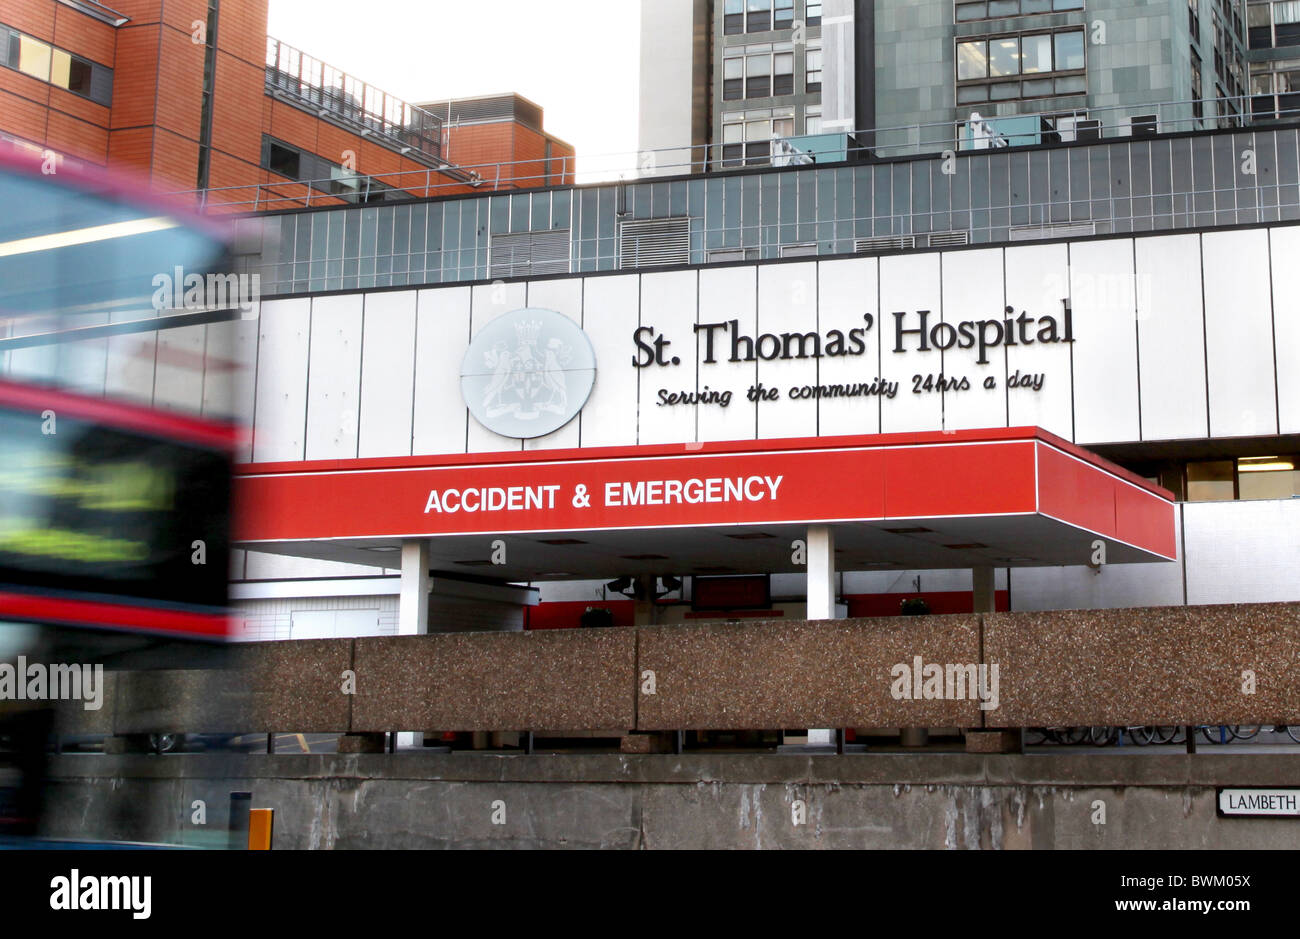 St. Thomas'  Hospital, London - Stock Image